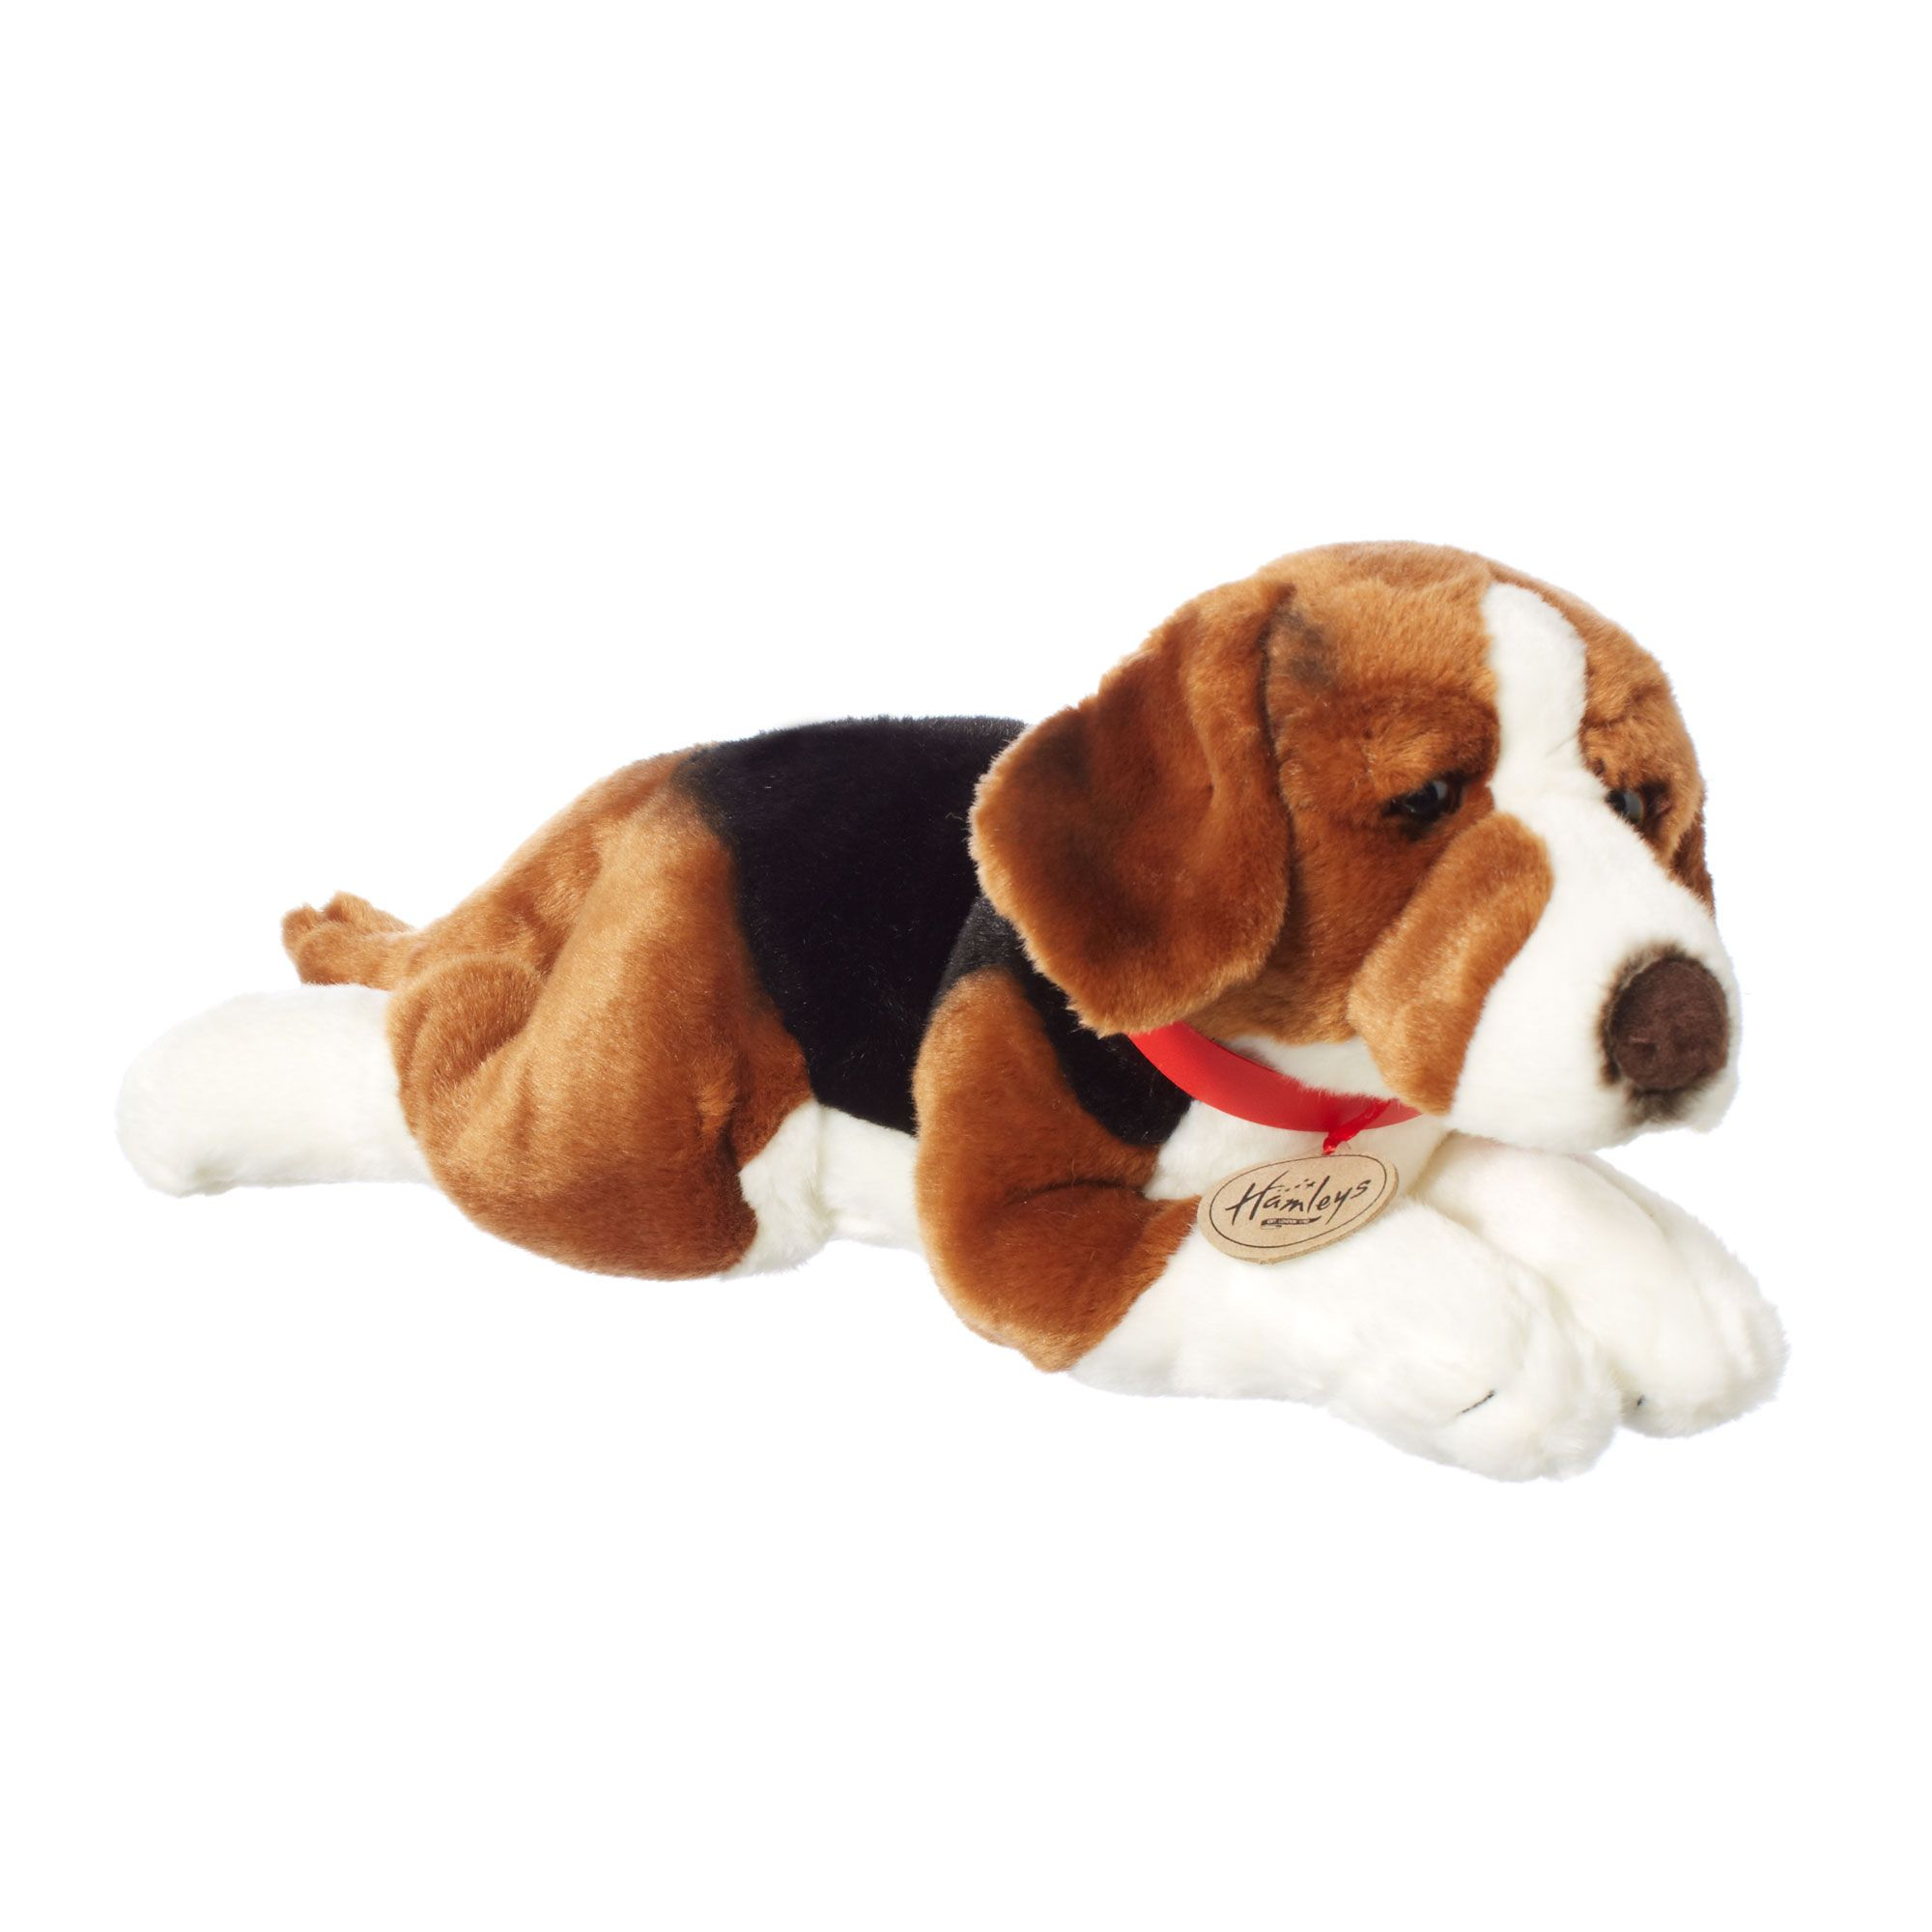 Hamleys Large Beagle Soft Toy